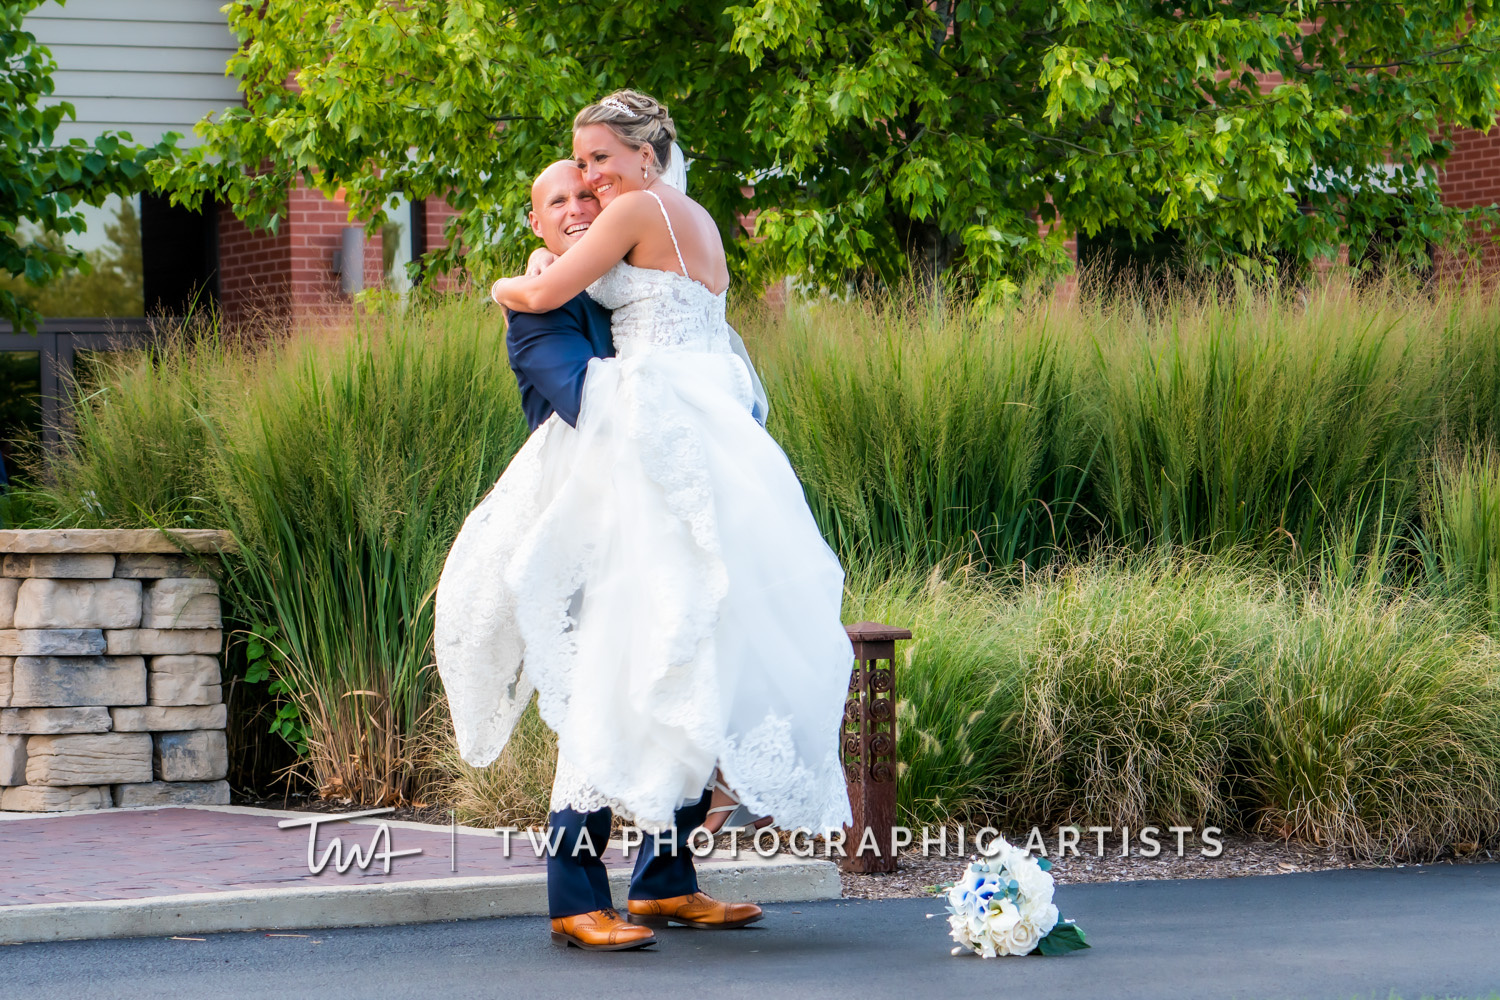 Chicago-Wedding-Photographer-TWA-Photographic-Artists-Reserve-22_Dufort_Gorski_NC-0534